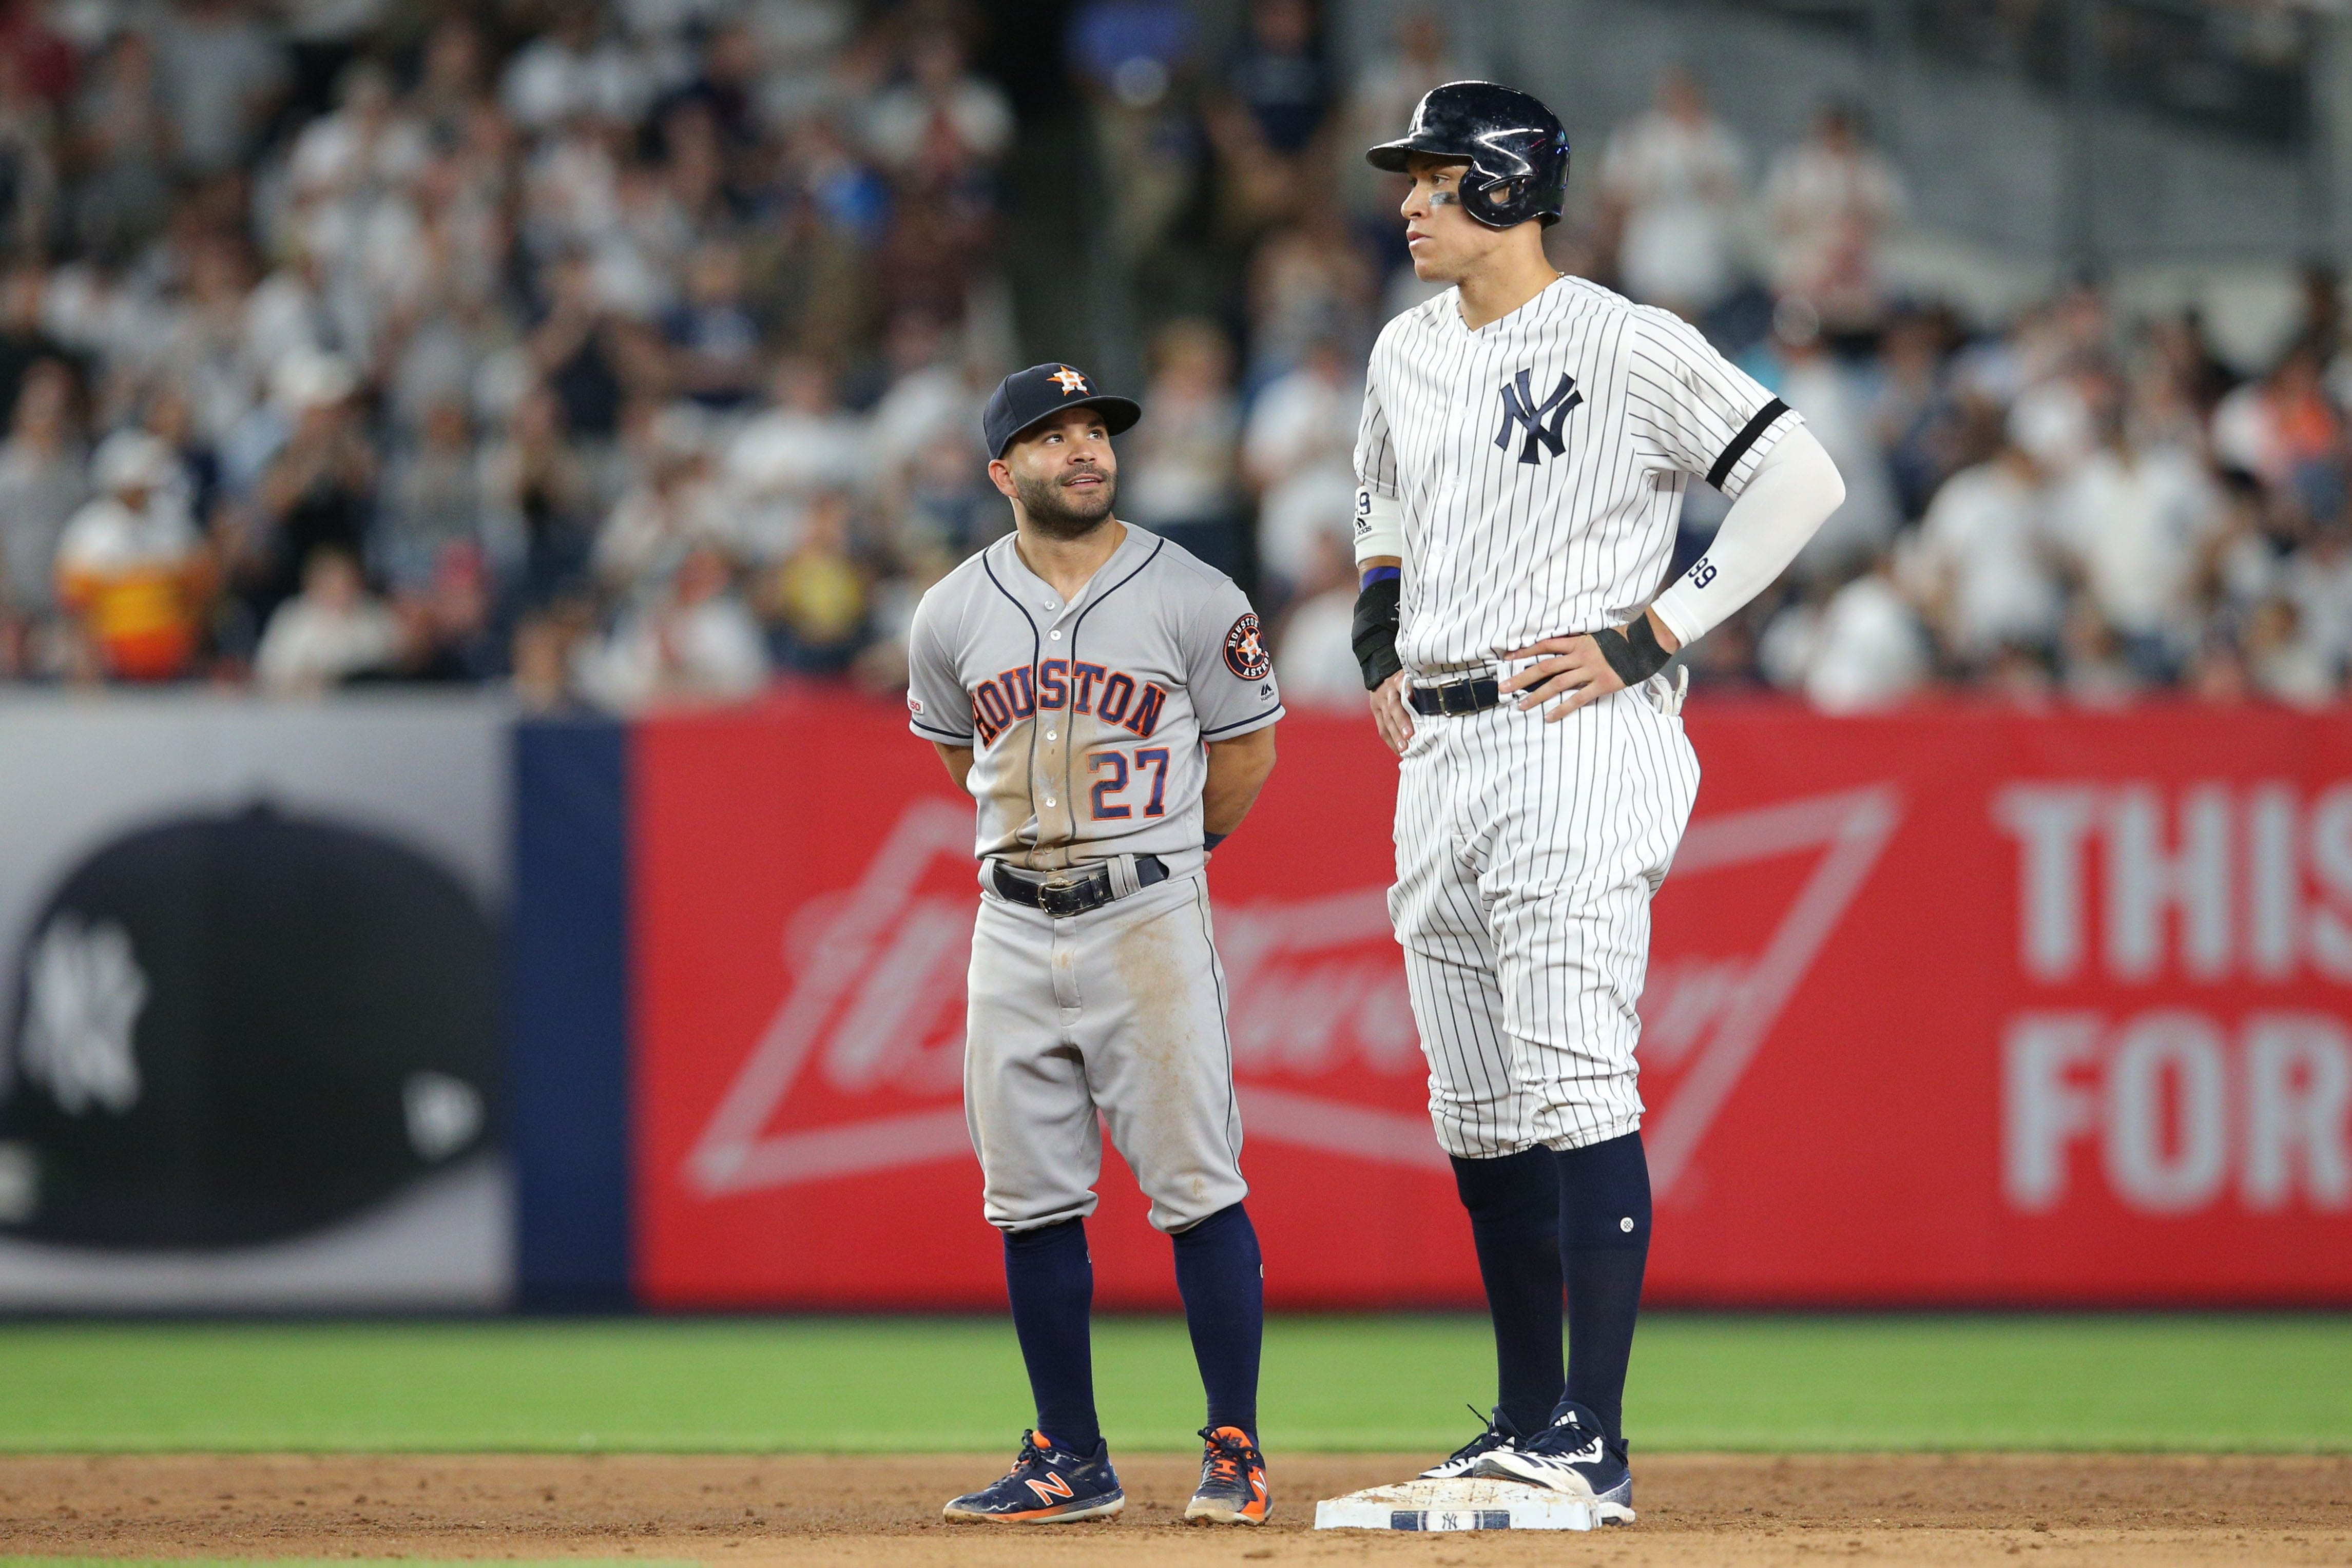 New York Yankees, Aaron Judge, Jose Altuve